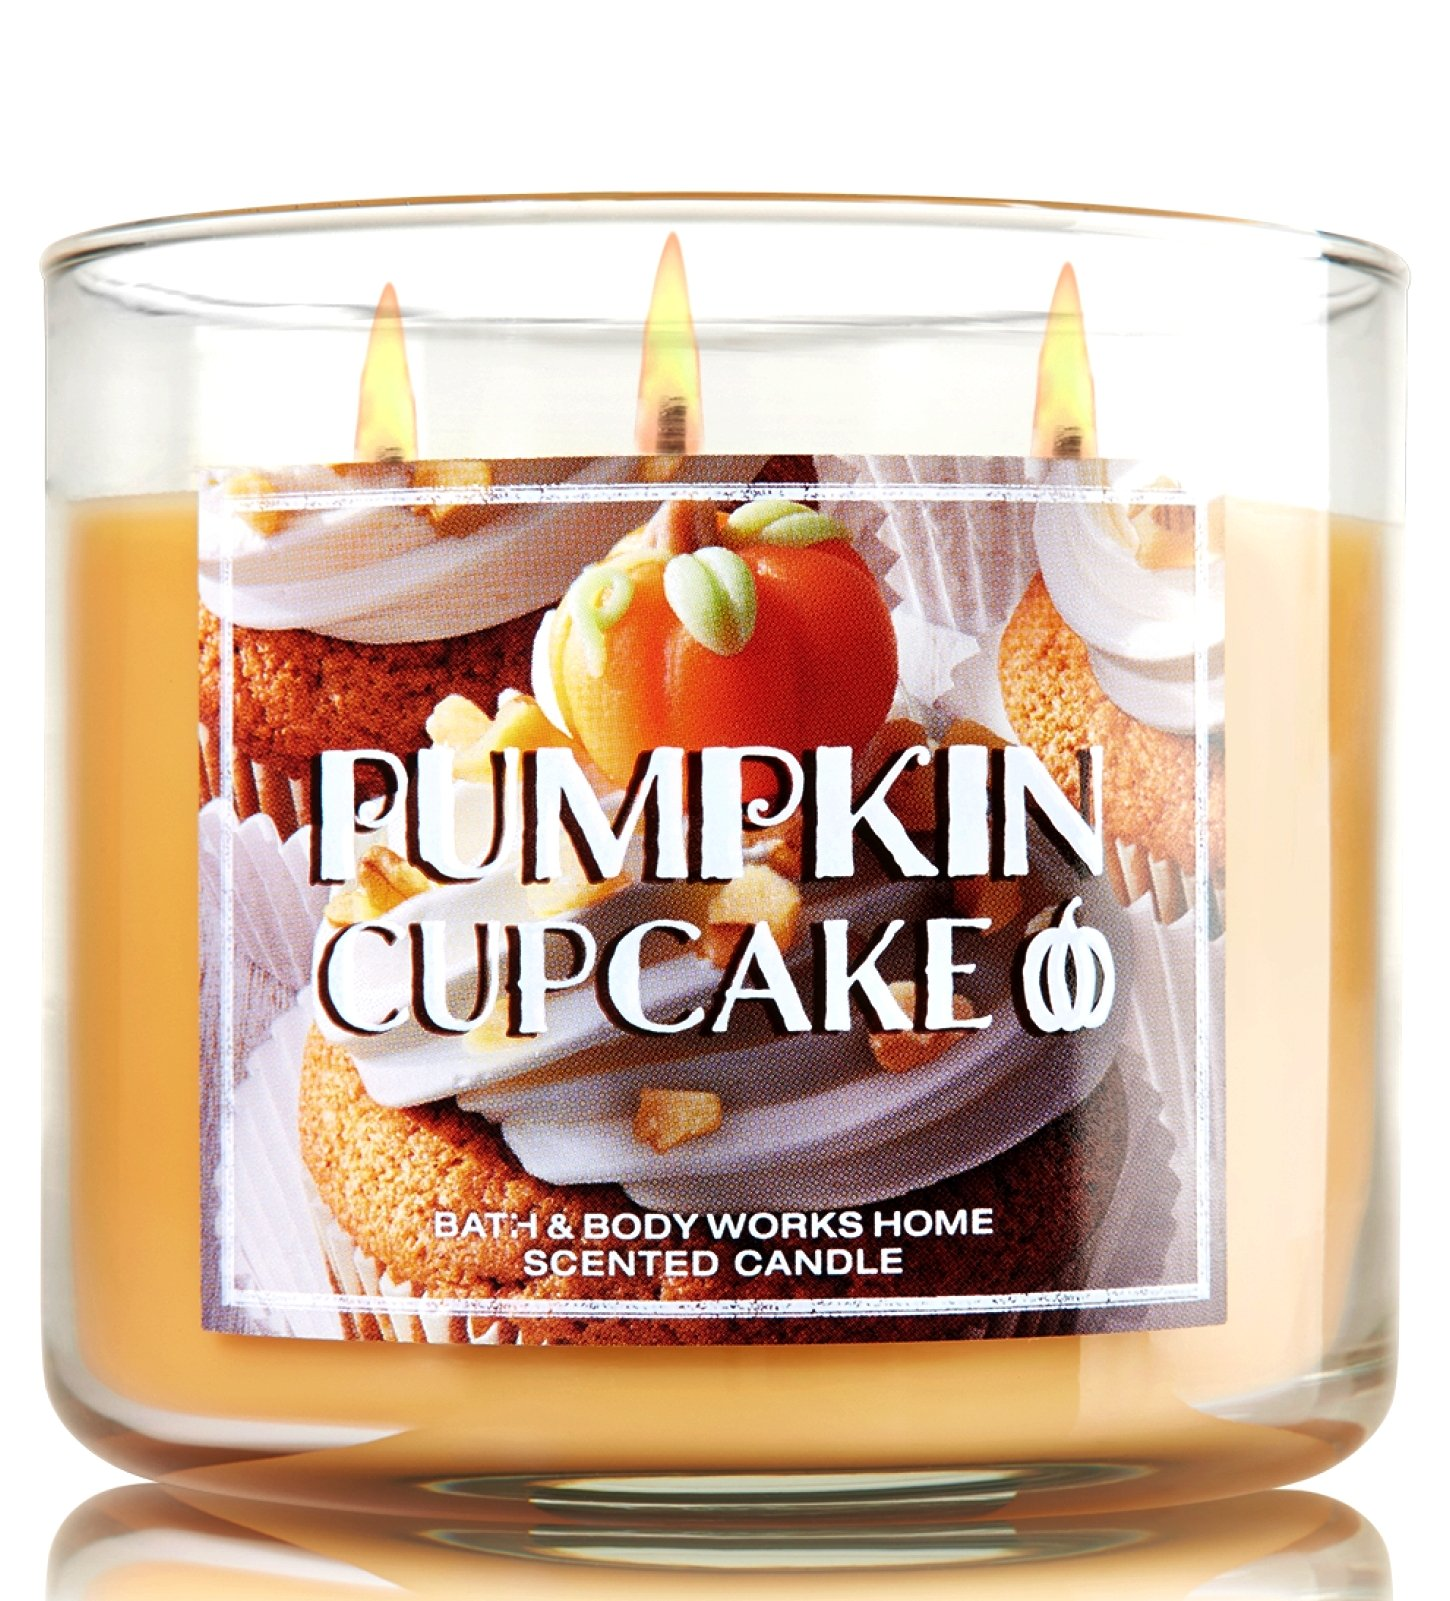 Bath & Body Works The Homemade Goodness Of Pumpkin Cupcake Scented 3 Wick 14.5 Ounce Candle by Bath and Body Works